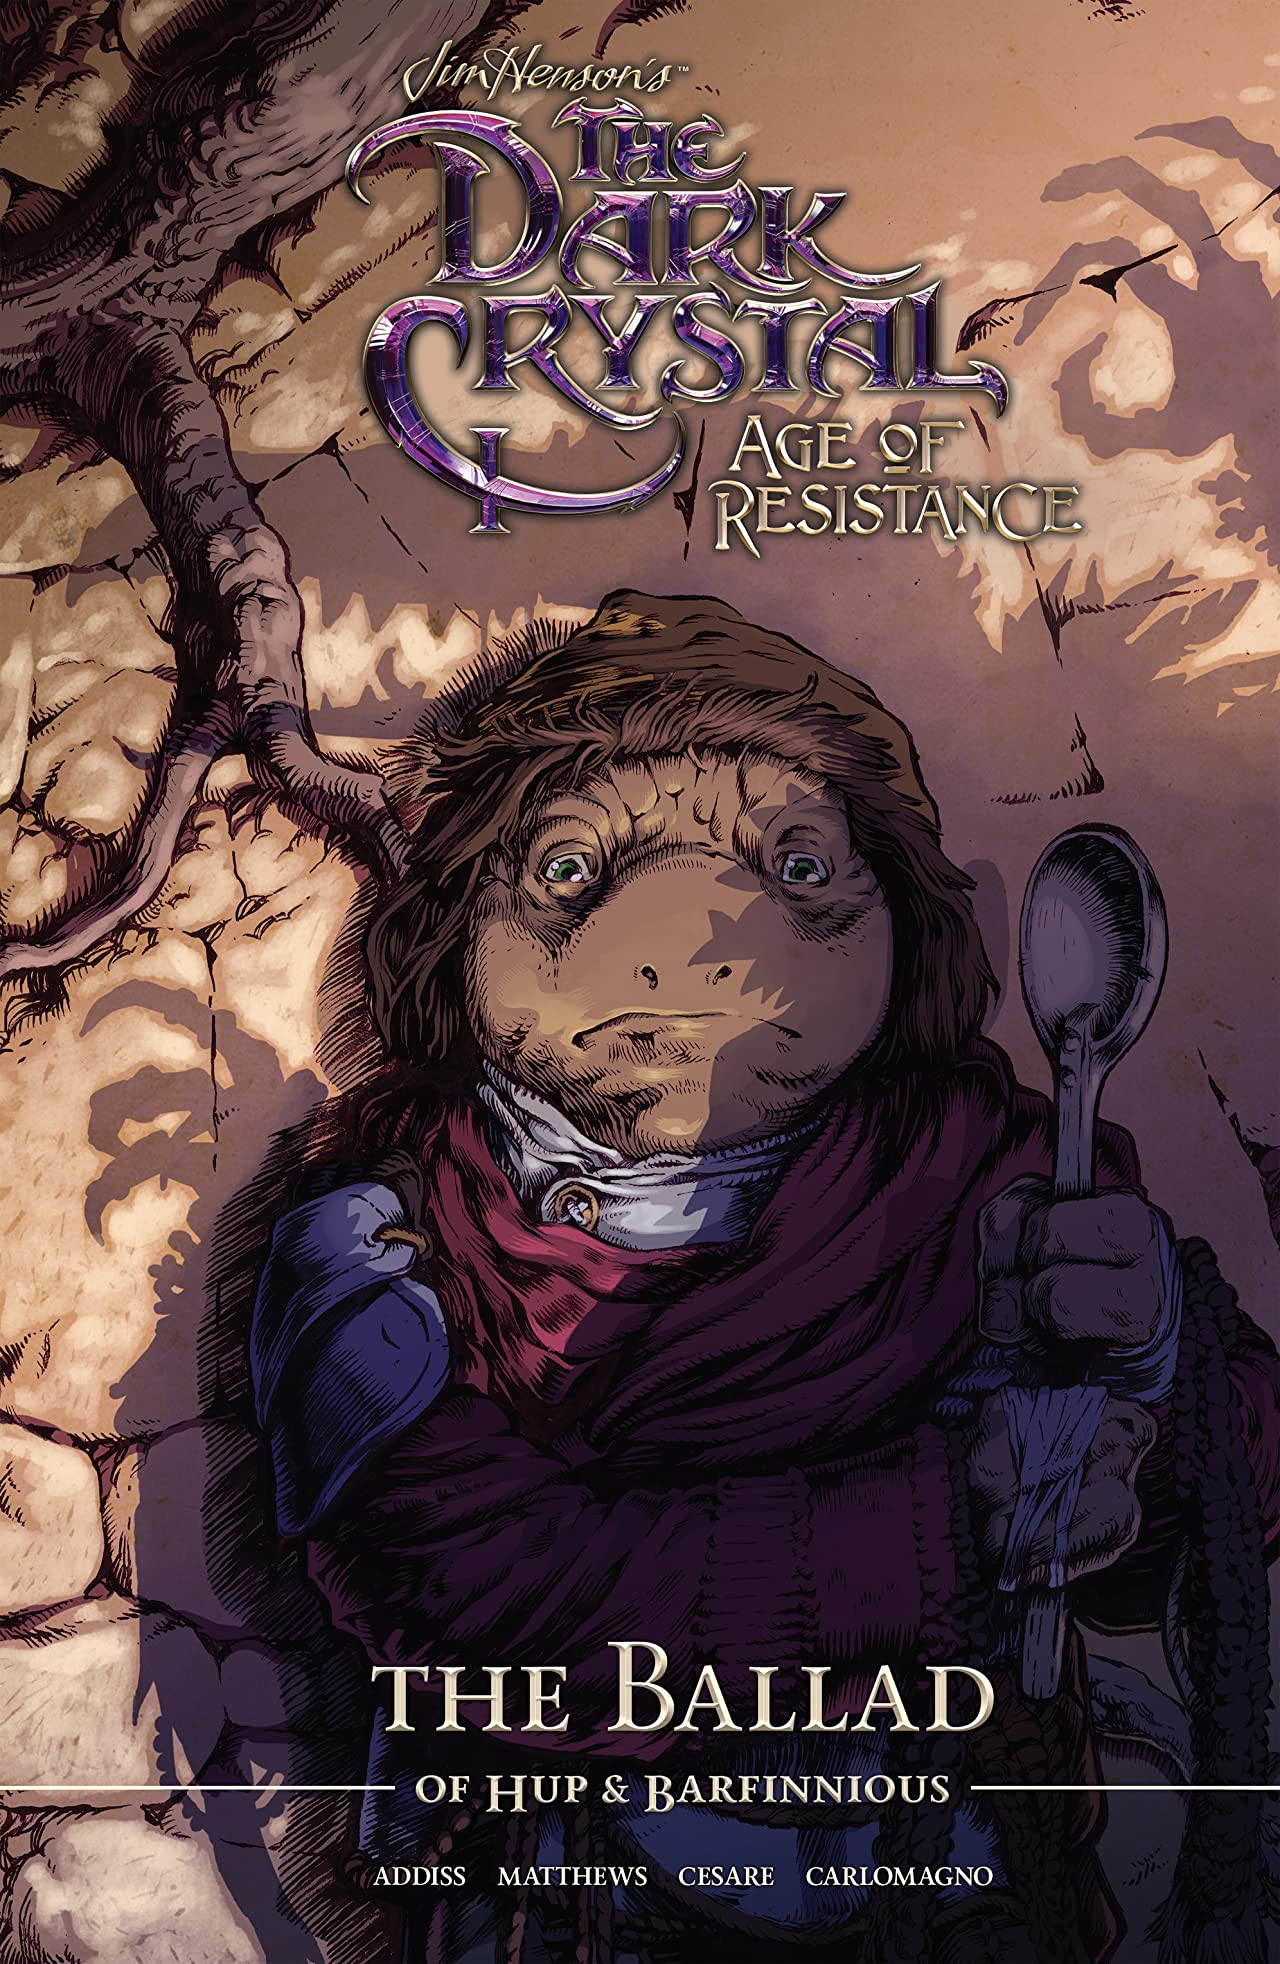 Jim Henson's The Dark Crystal: Age of Resistance Vol. 2: The Ballad of Hup & Barfinnious